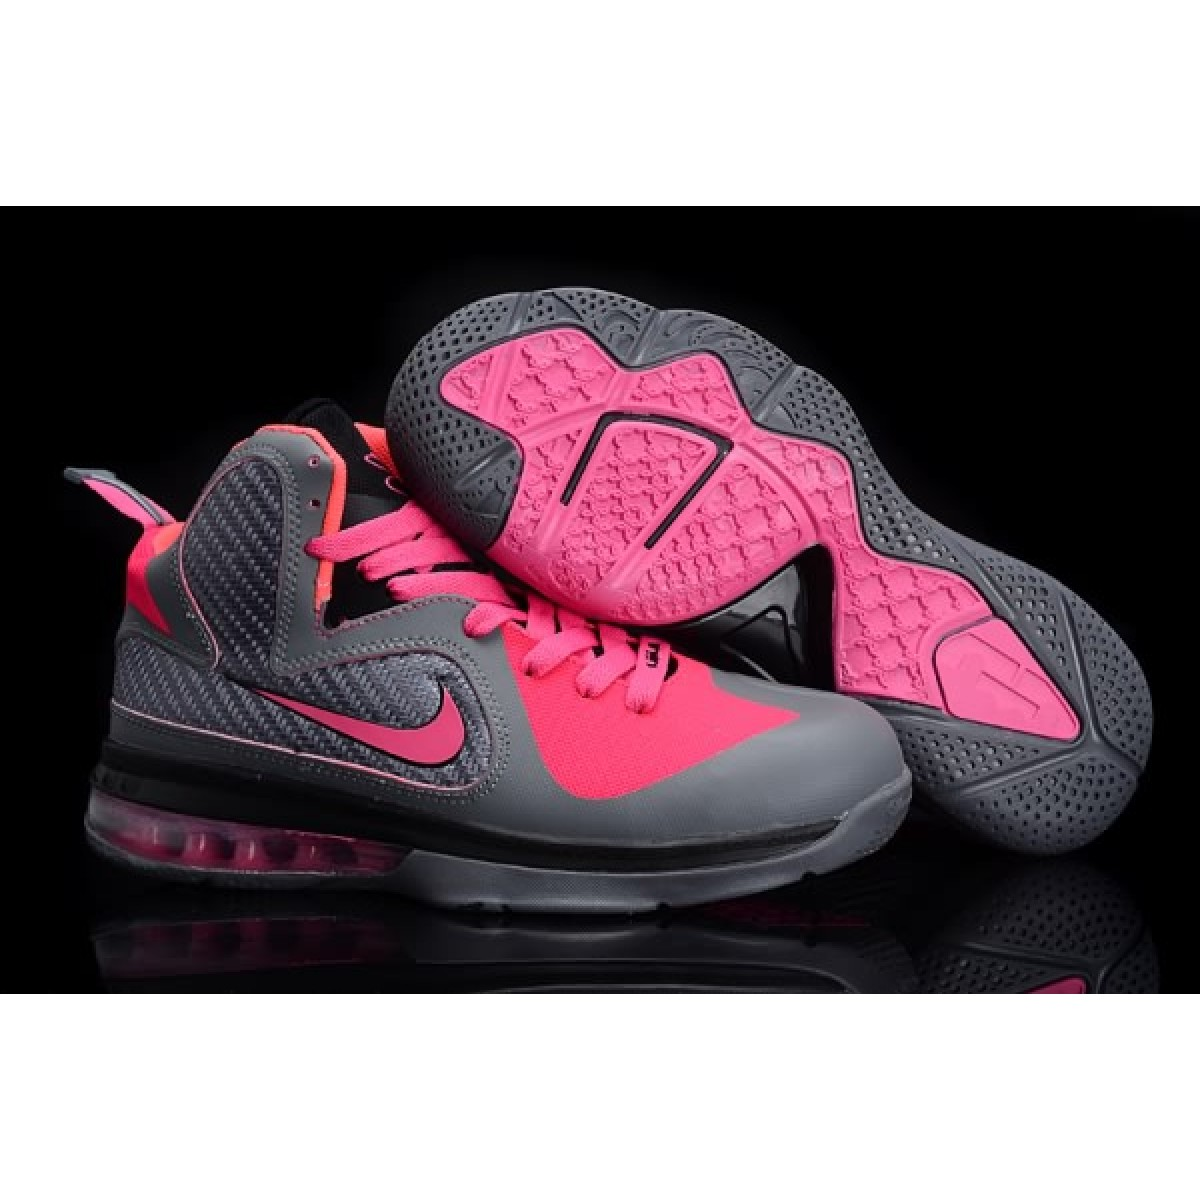 Nike Lebron James Womens Basketball Shoes  5f9141529